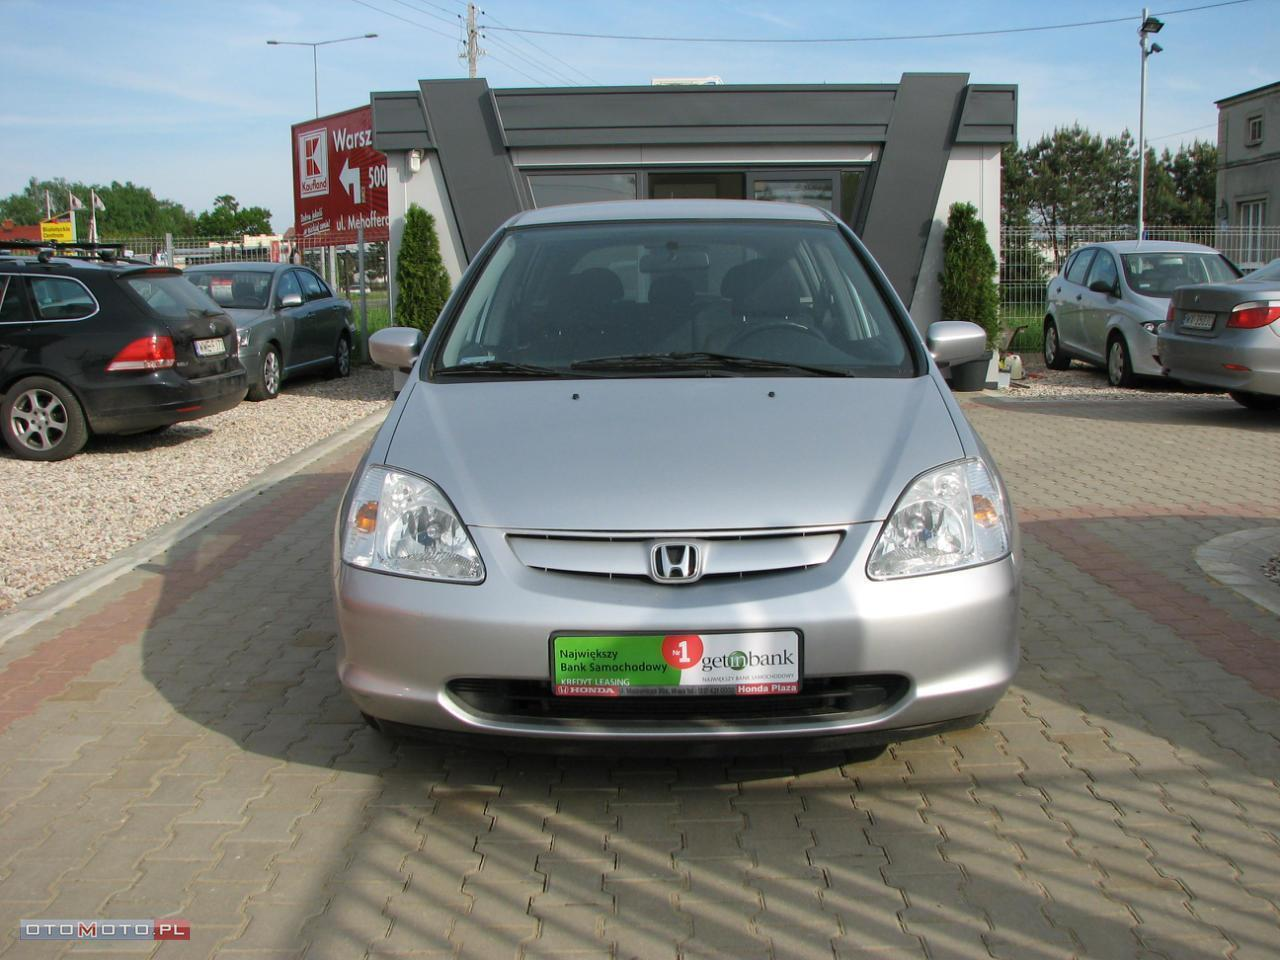 Honda Civic 1.4 16V *SALON* I-szy.wł!